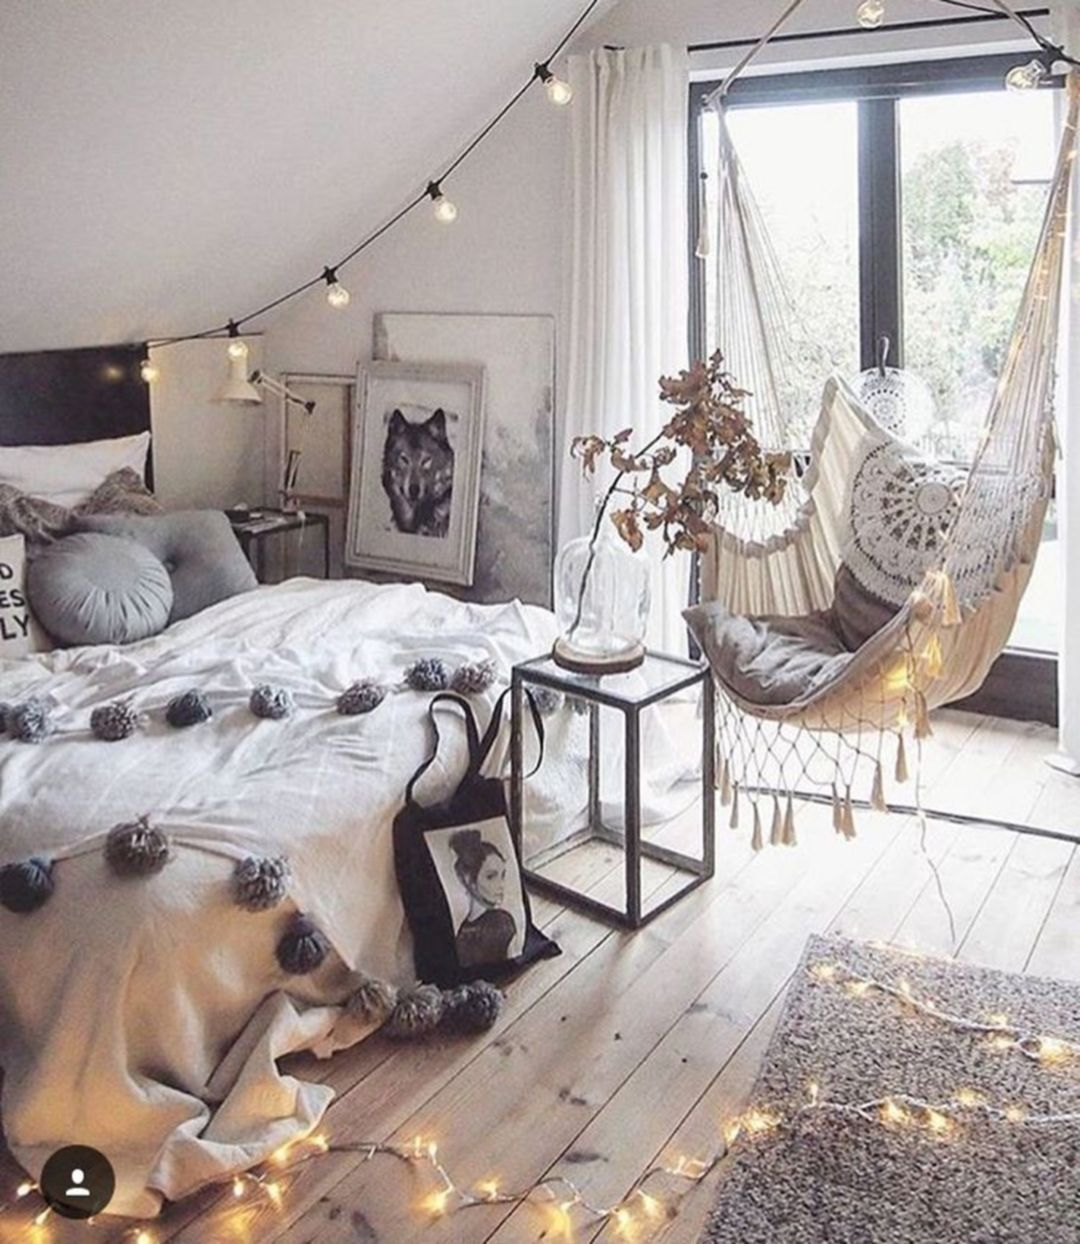 20 Chic Boho Bedroom Ideas For Comfortable Sleep at Night images